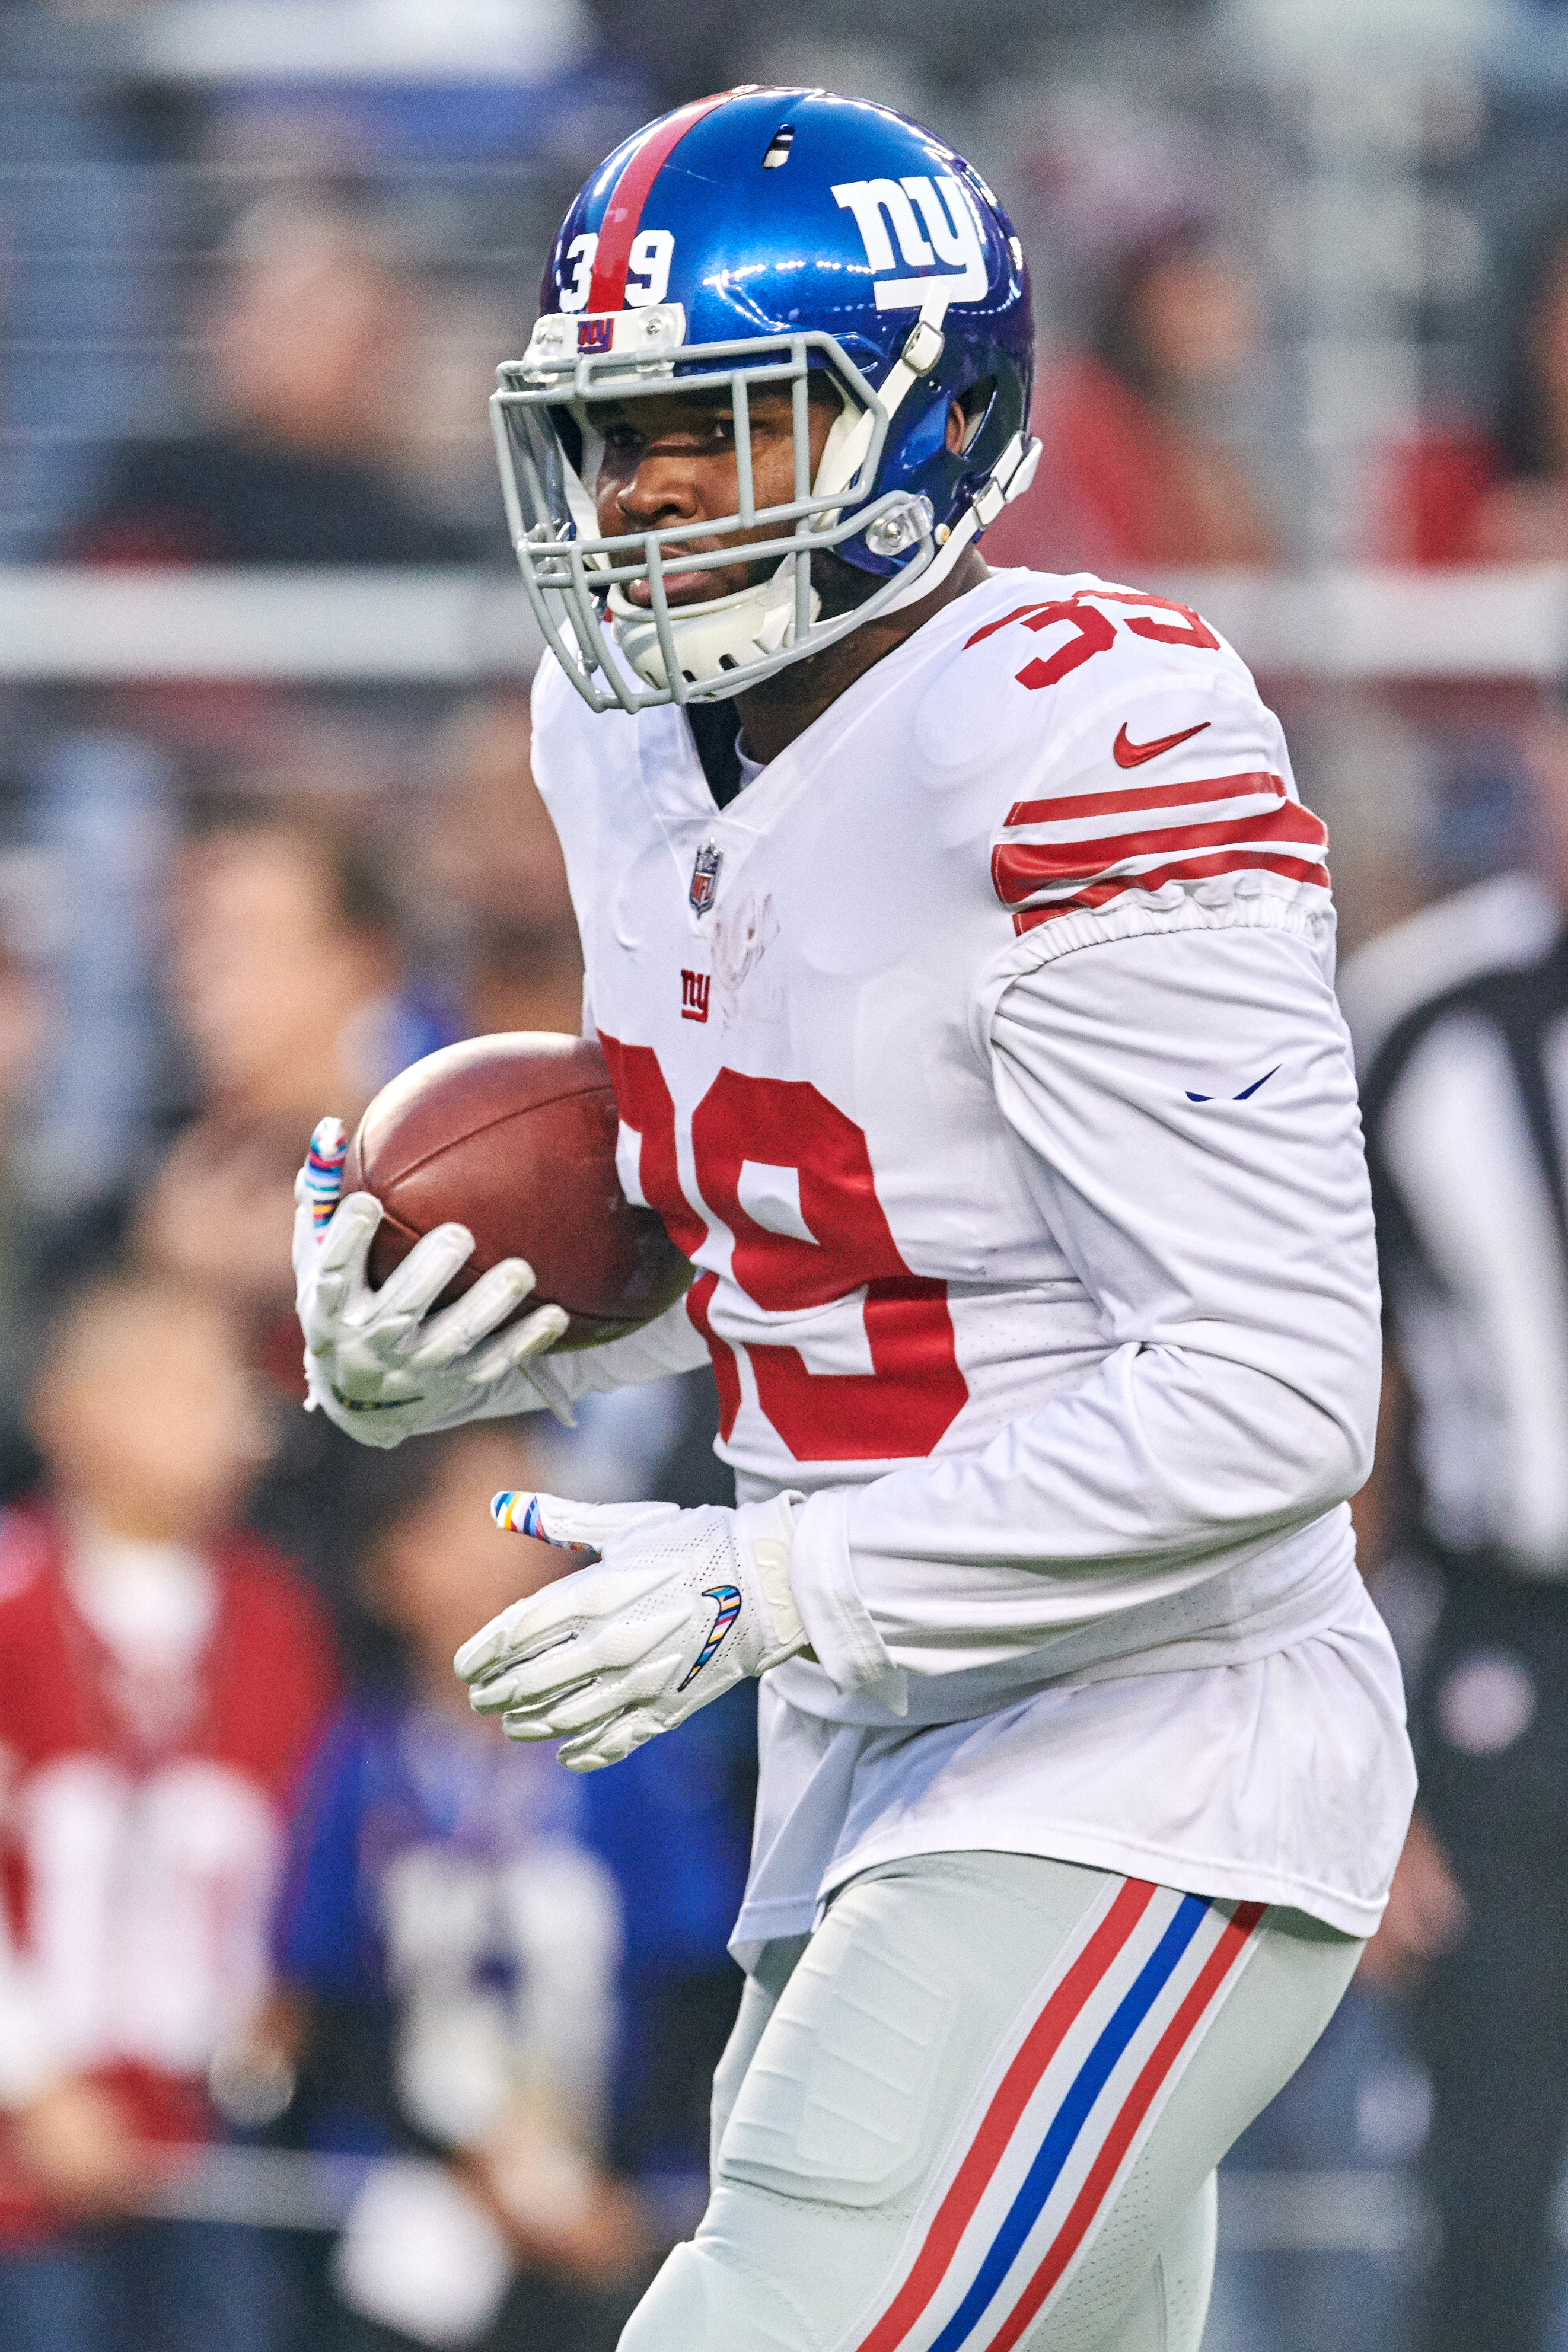 Elijhaa Penny is more to the Giants than just Saquon Barkley's lead blocker